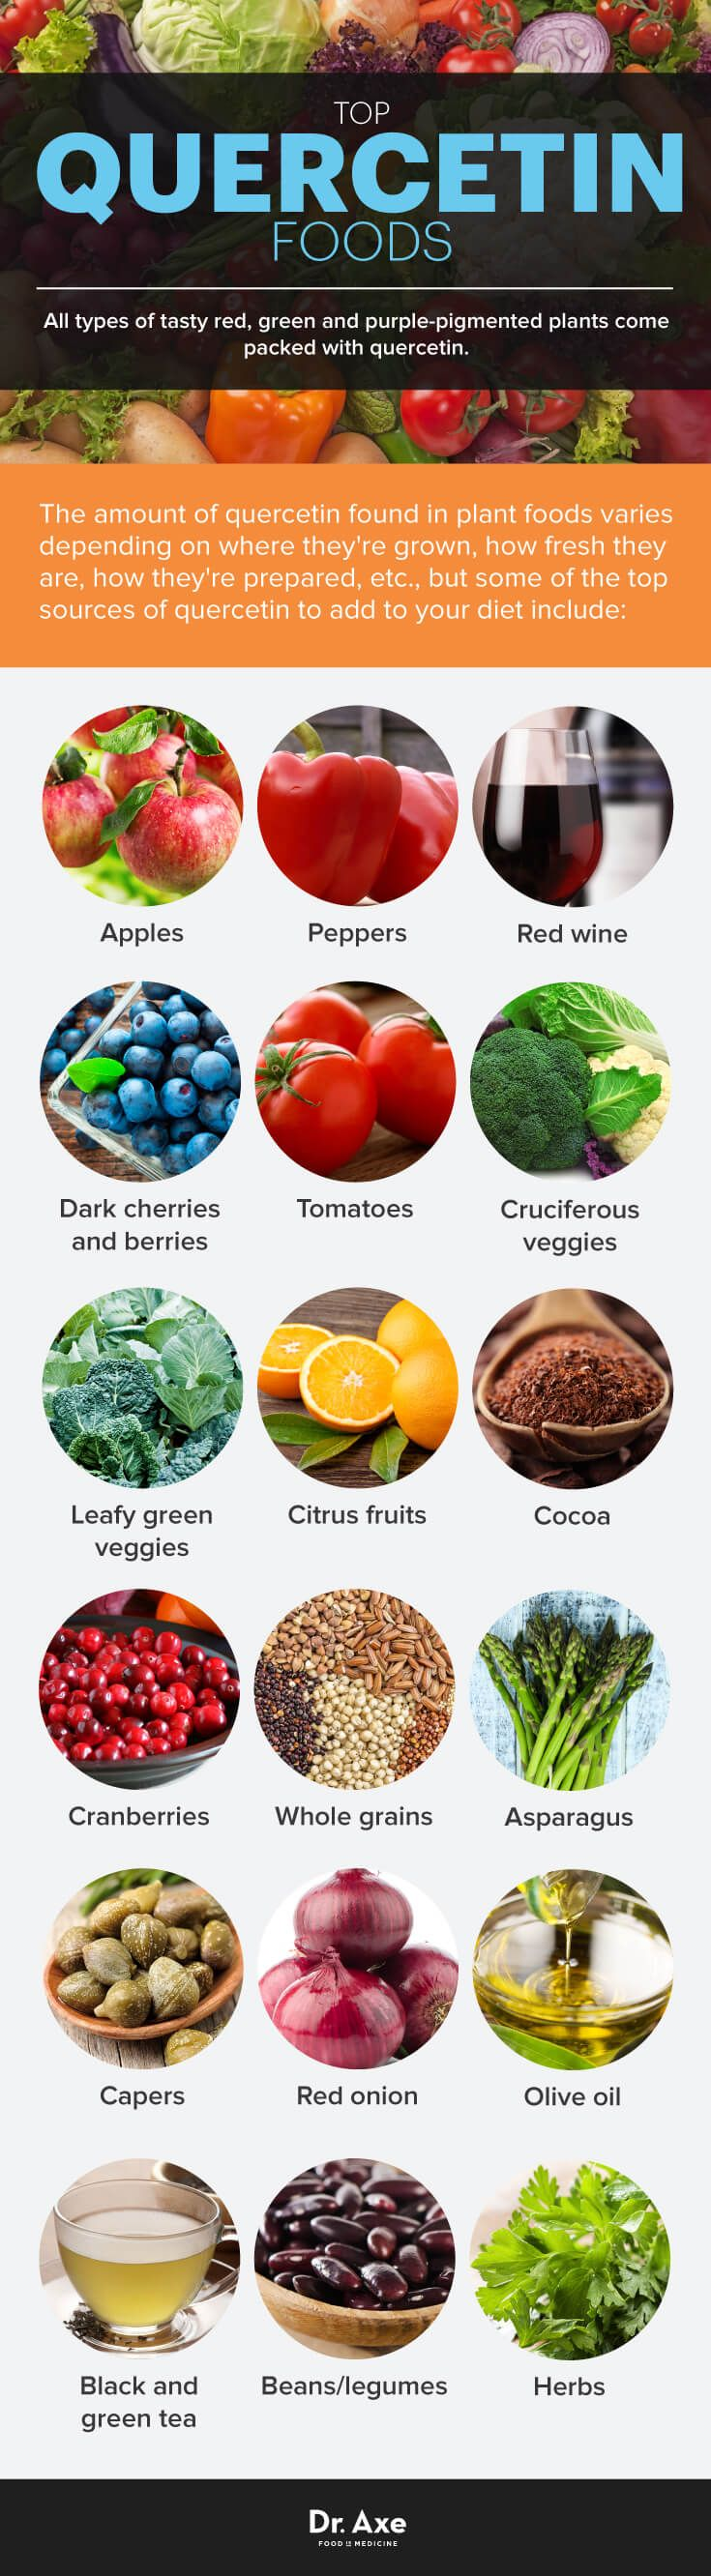 Did you know quercetin could help you exercise and even live longer? There are many more quercetin benefits too. Try these quercetin food sources to get more in your diet.